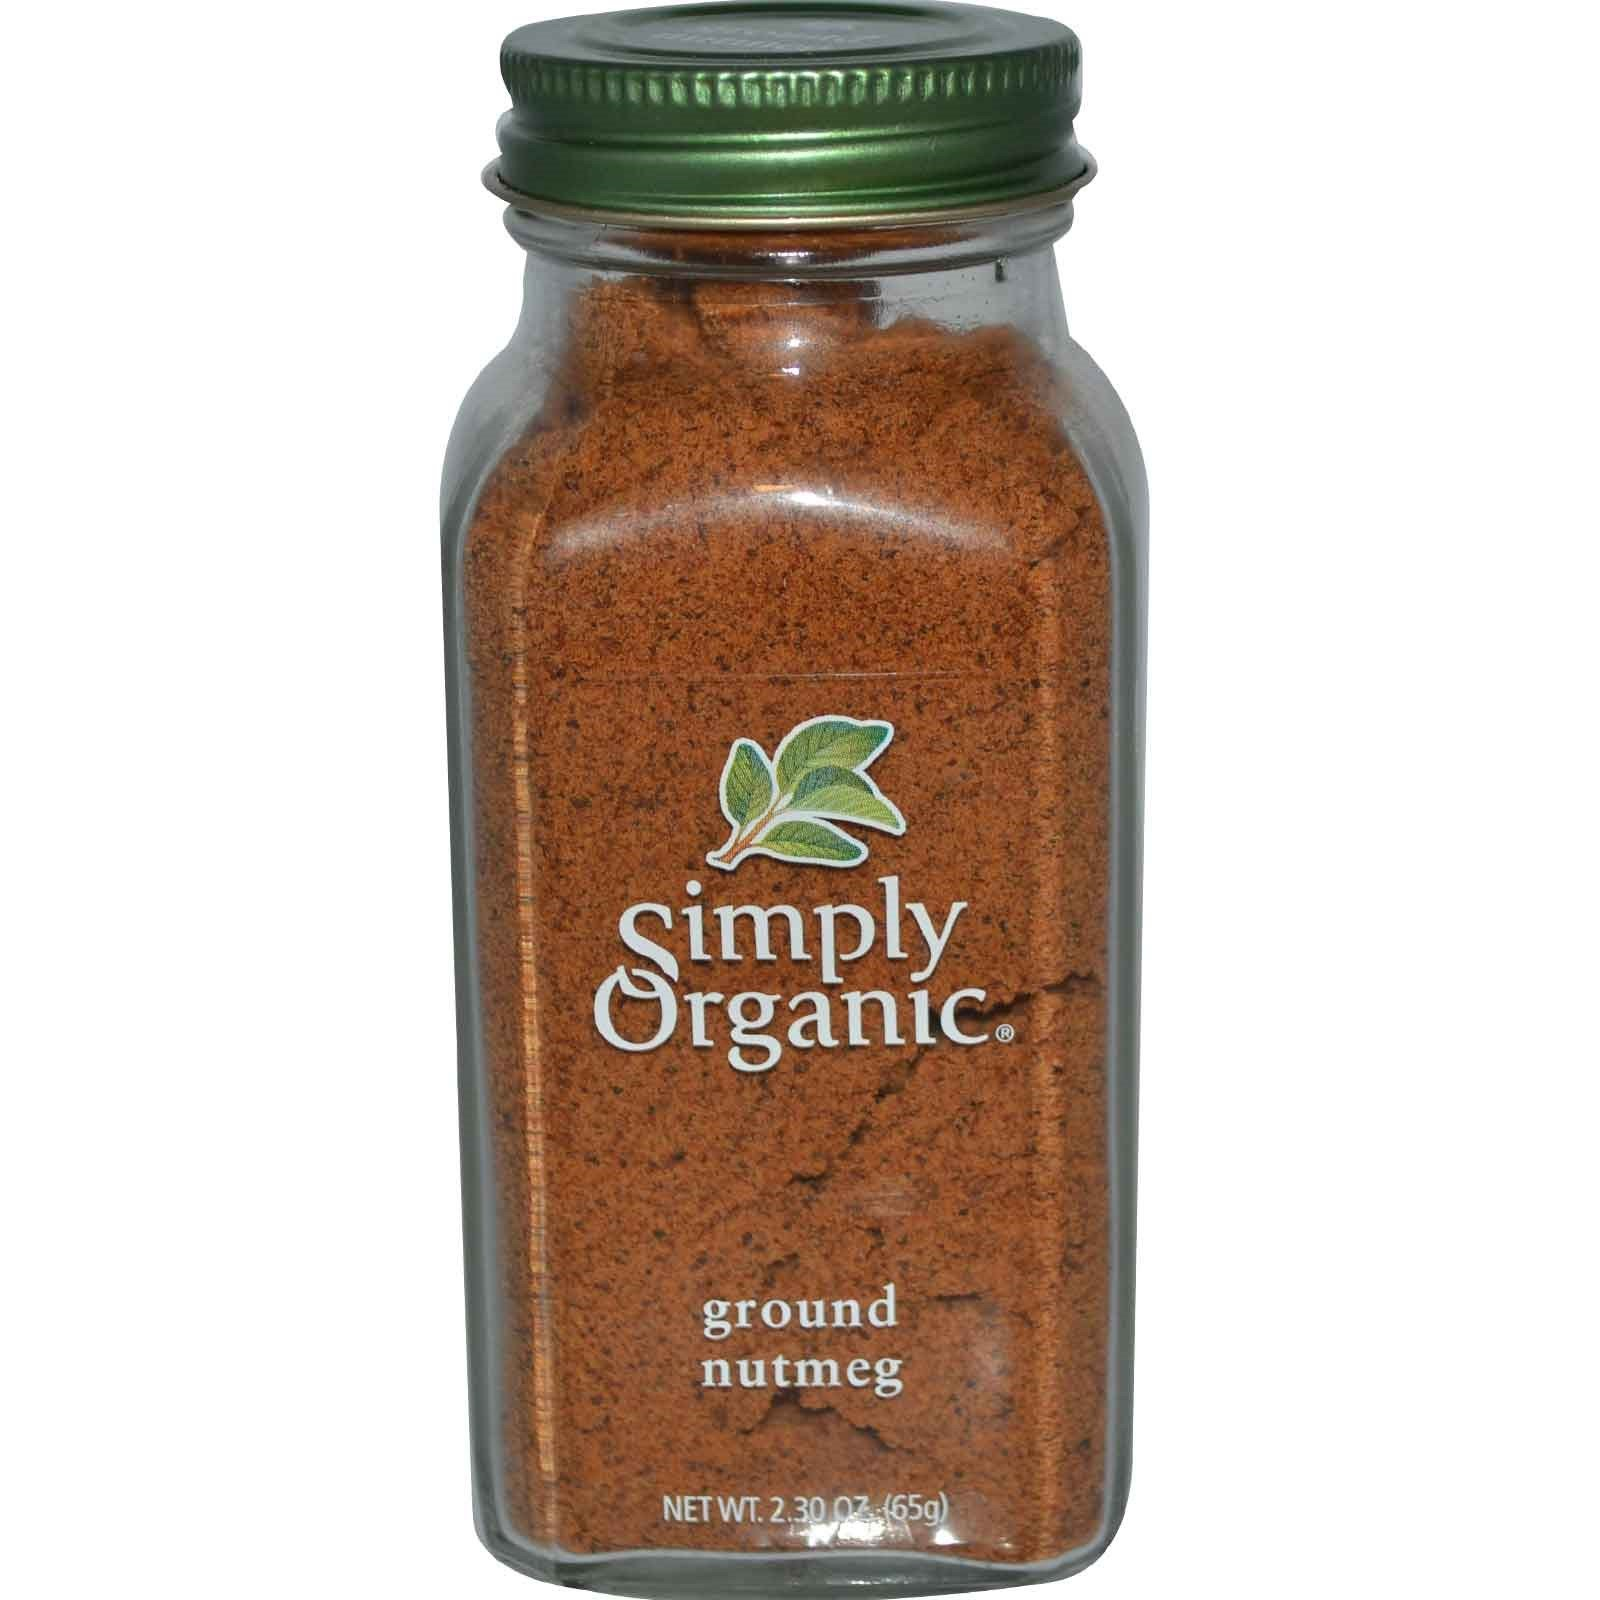 Simply Organic, Ground Nutmeg, 2.30 oz(Pack of 2)